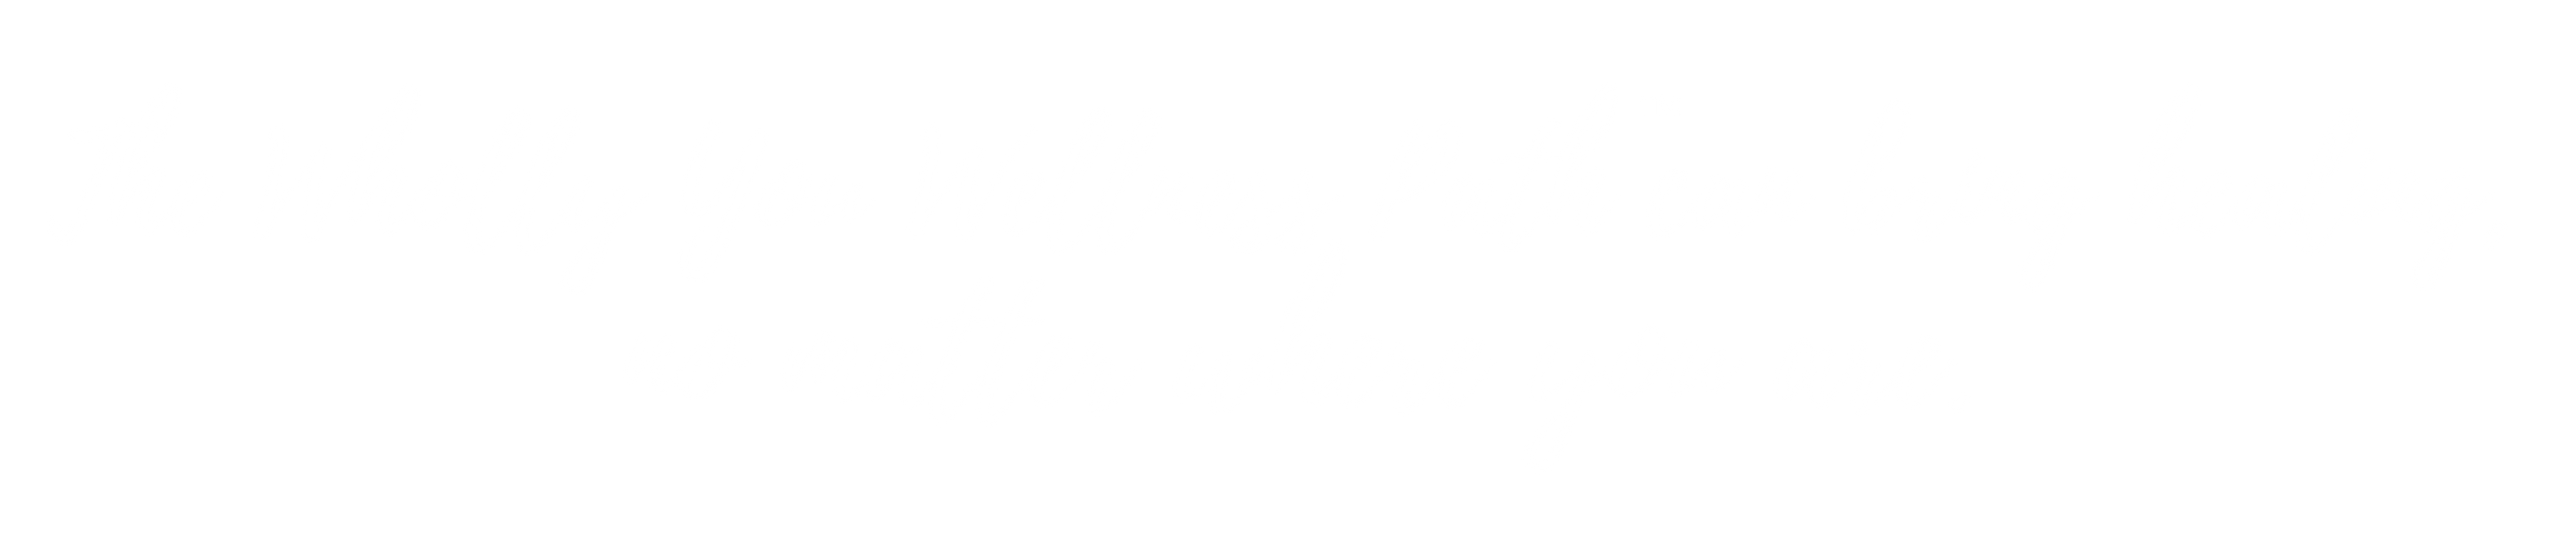 The Wholly You Wellness Path